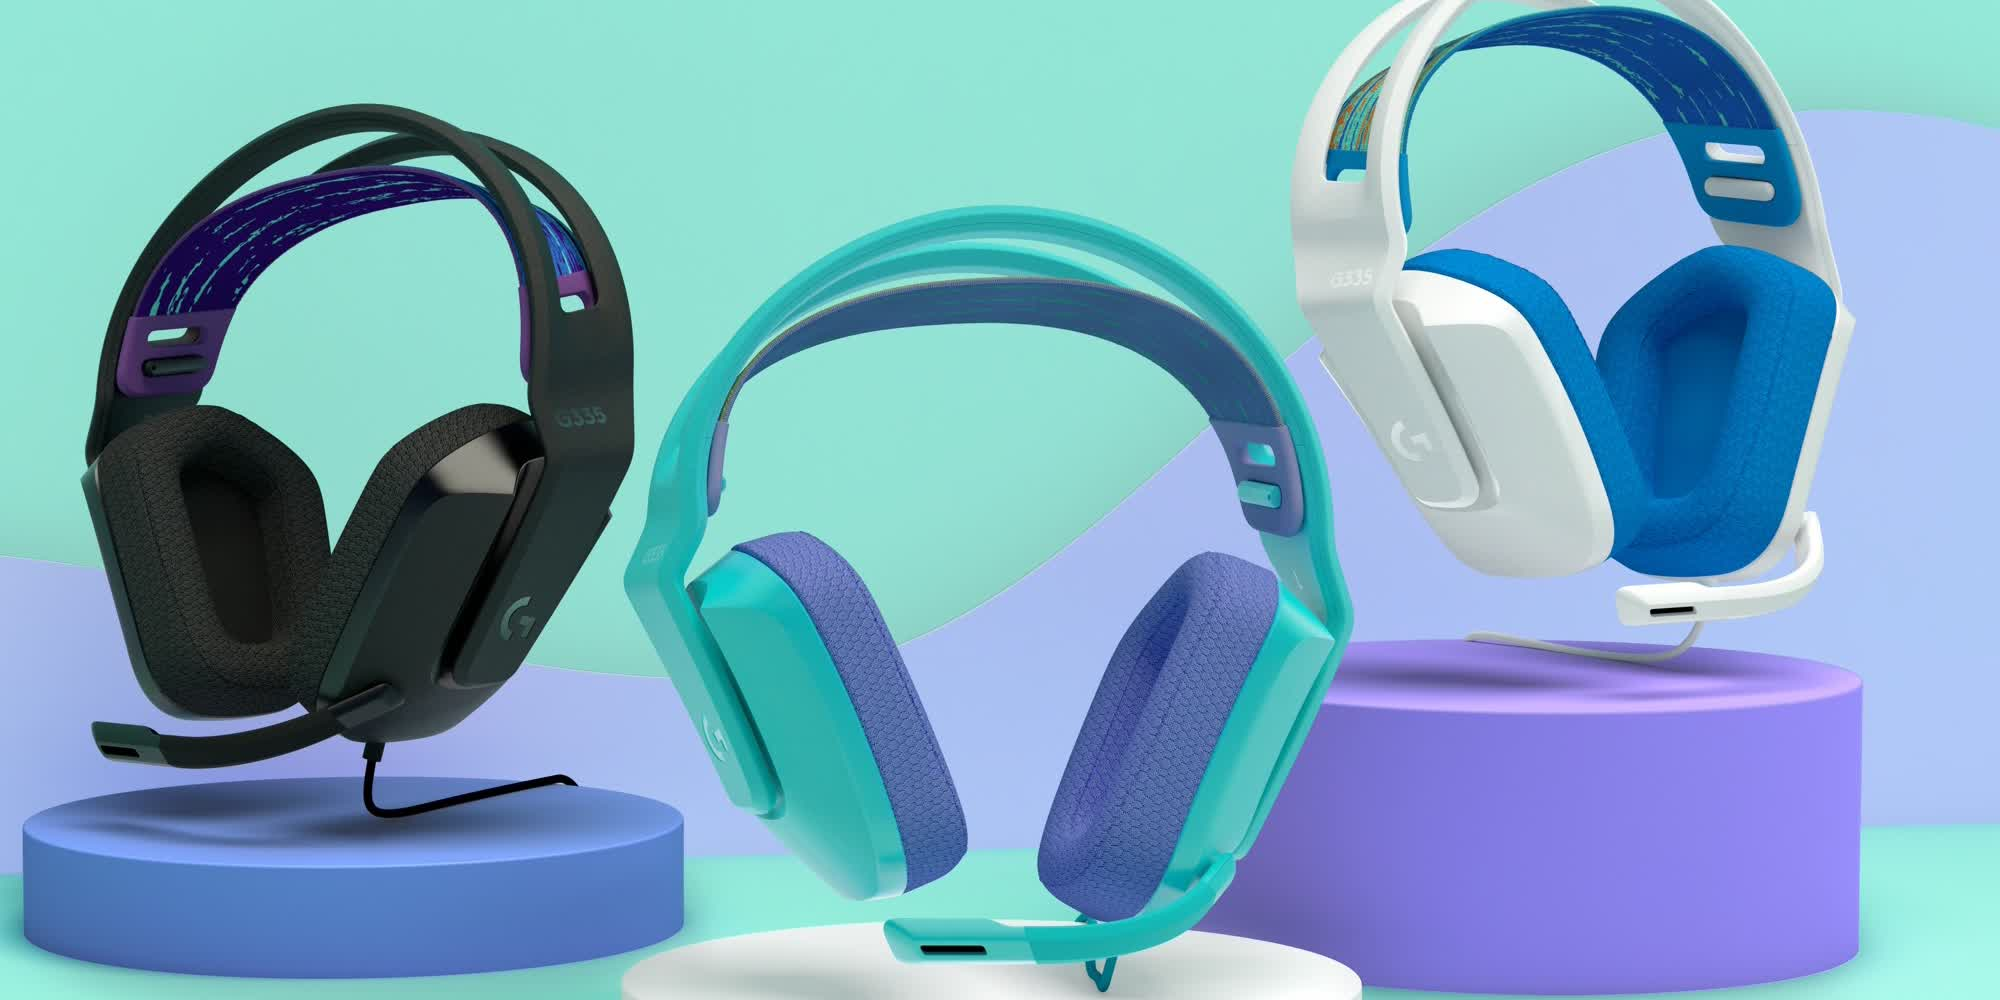 Logitech's G335 is a colorful, wired (and more affordable) version of the G733